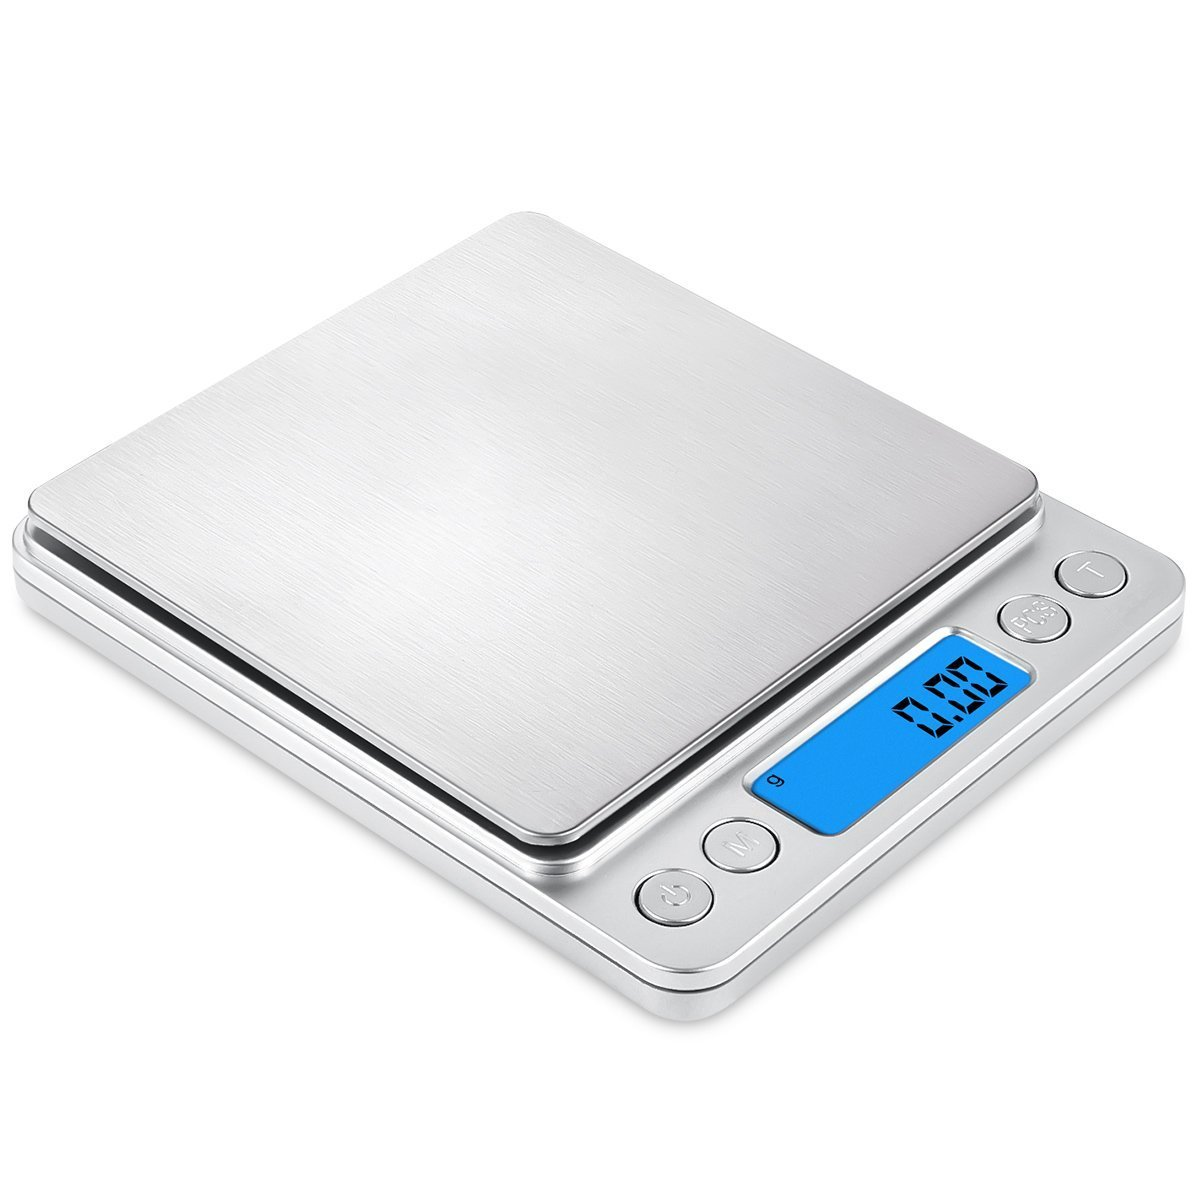 Mini Digital Kitchen Scale, Multifunction Food Scale,500g/0.01g Mini Pocket Jewelry Scale, Cooking Food Scale with Back-Lit LCD Display, 2 Trays, 6 Units, Auto Off, Tare, PCS Function, Stainless Steel, Batteries Included